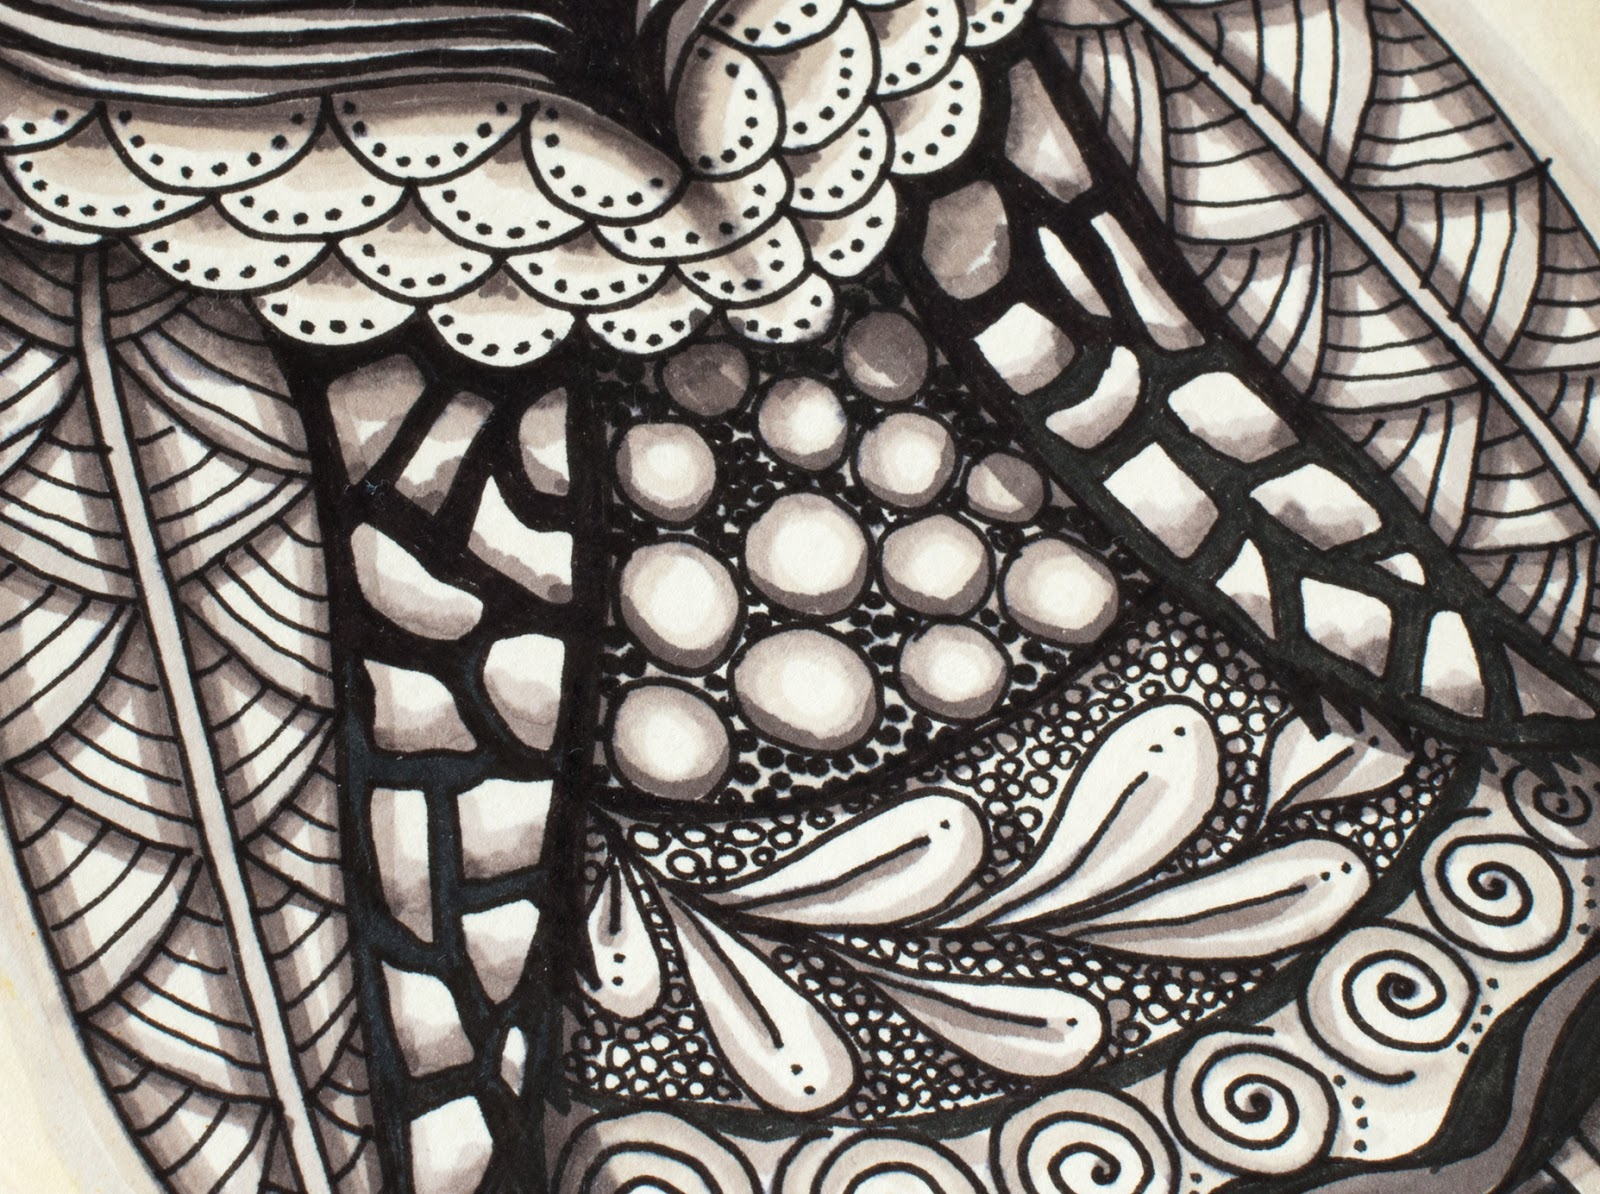 Evening Zentangle - Session 4